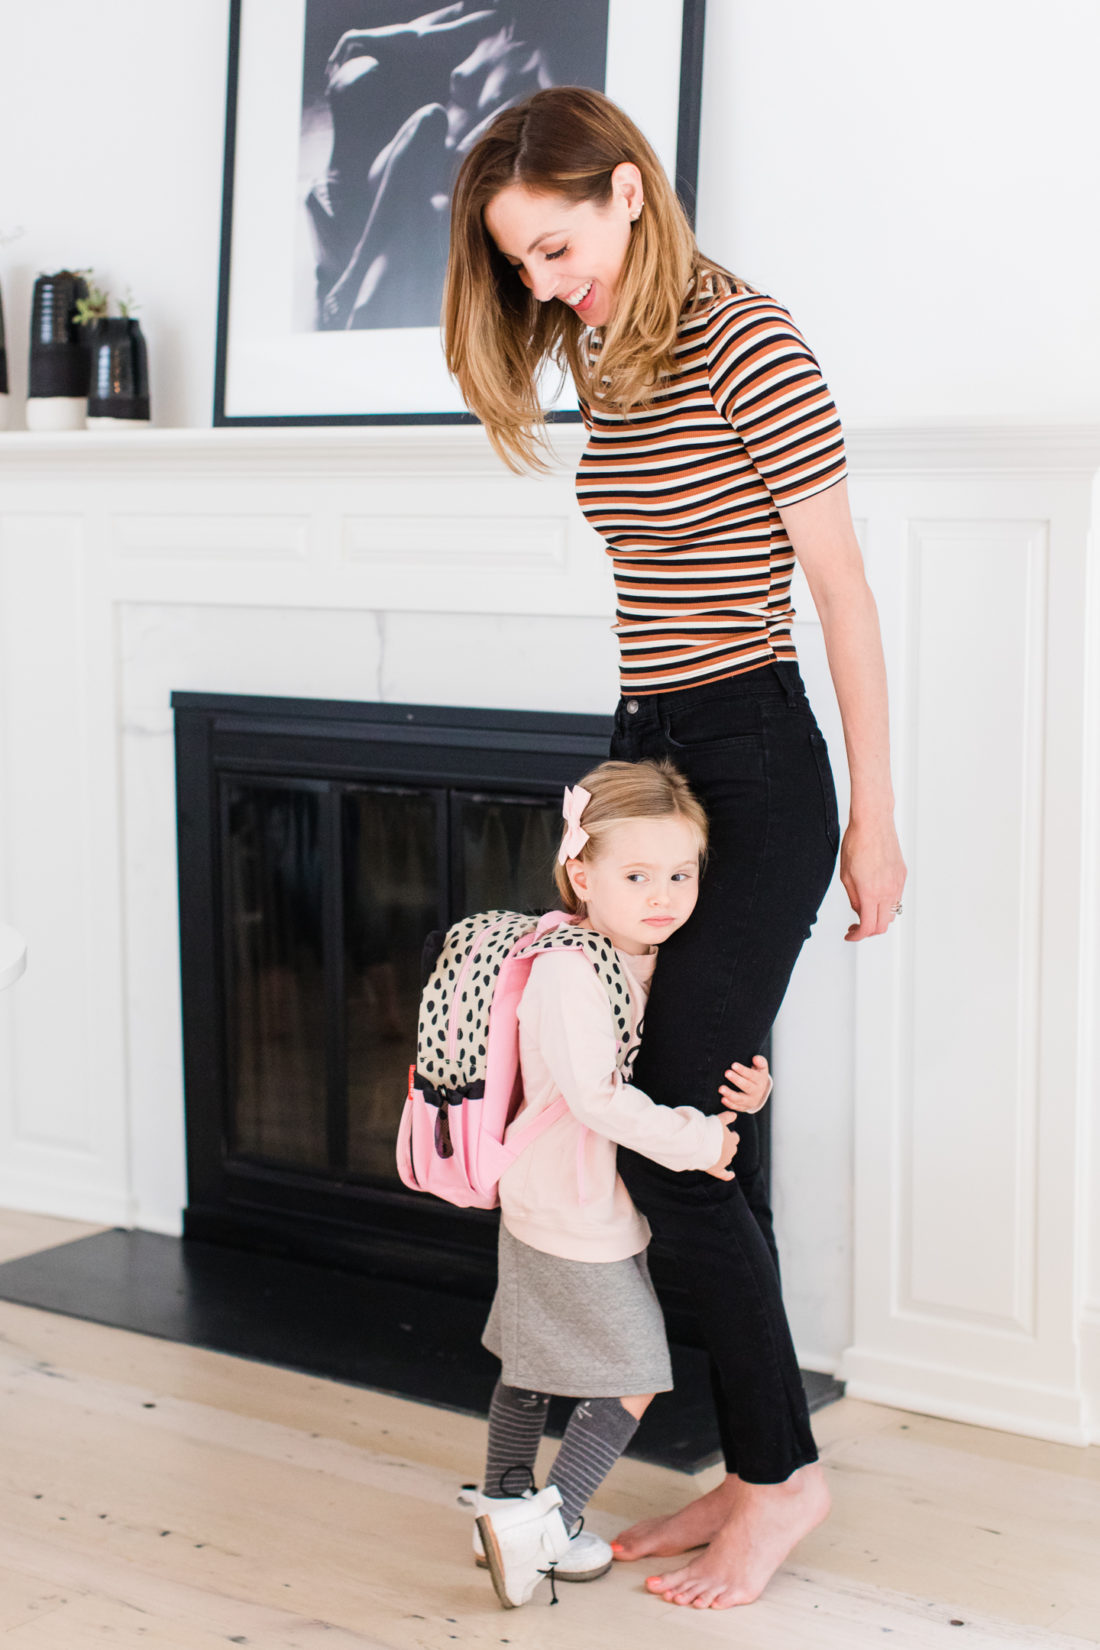 Marlowe Martino hugs her Mom's leg as she gets ready to head off to the first day of Preschool